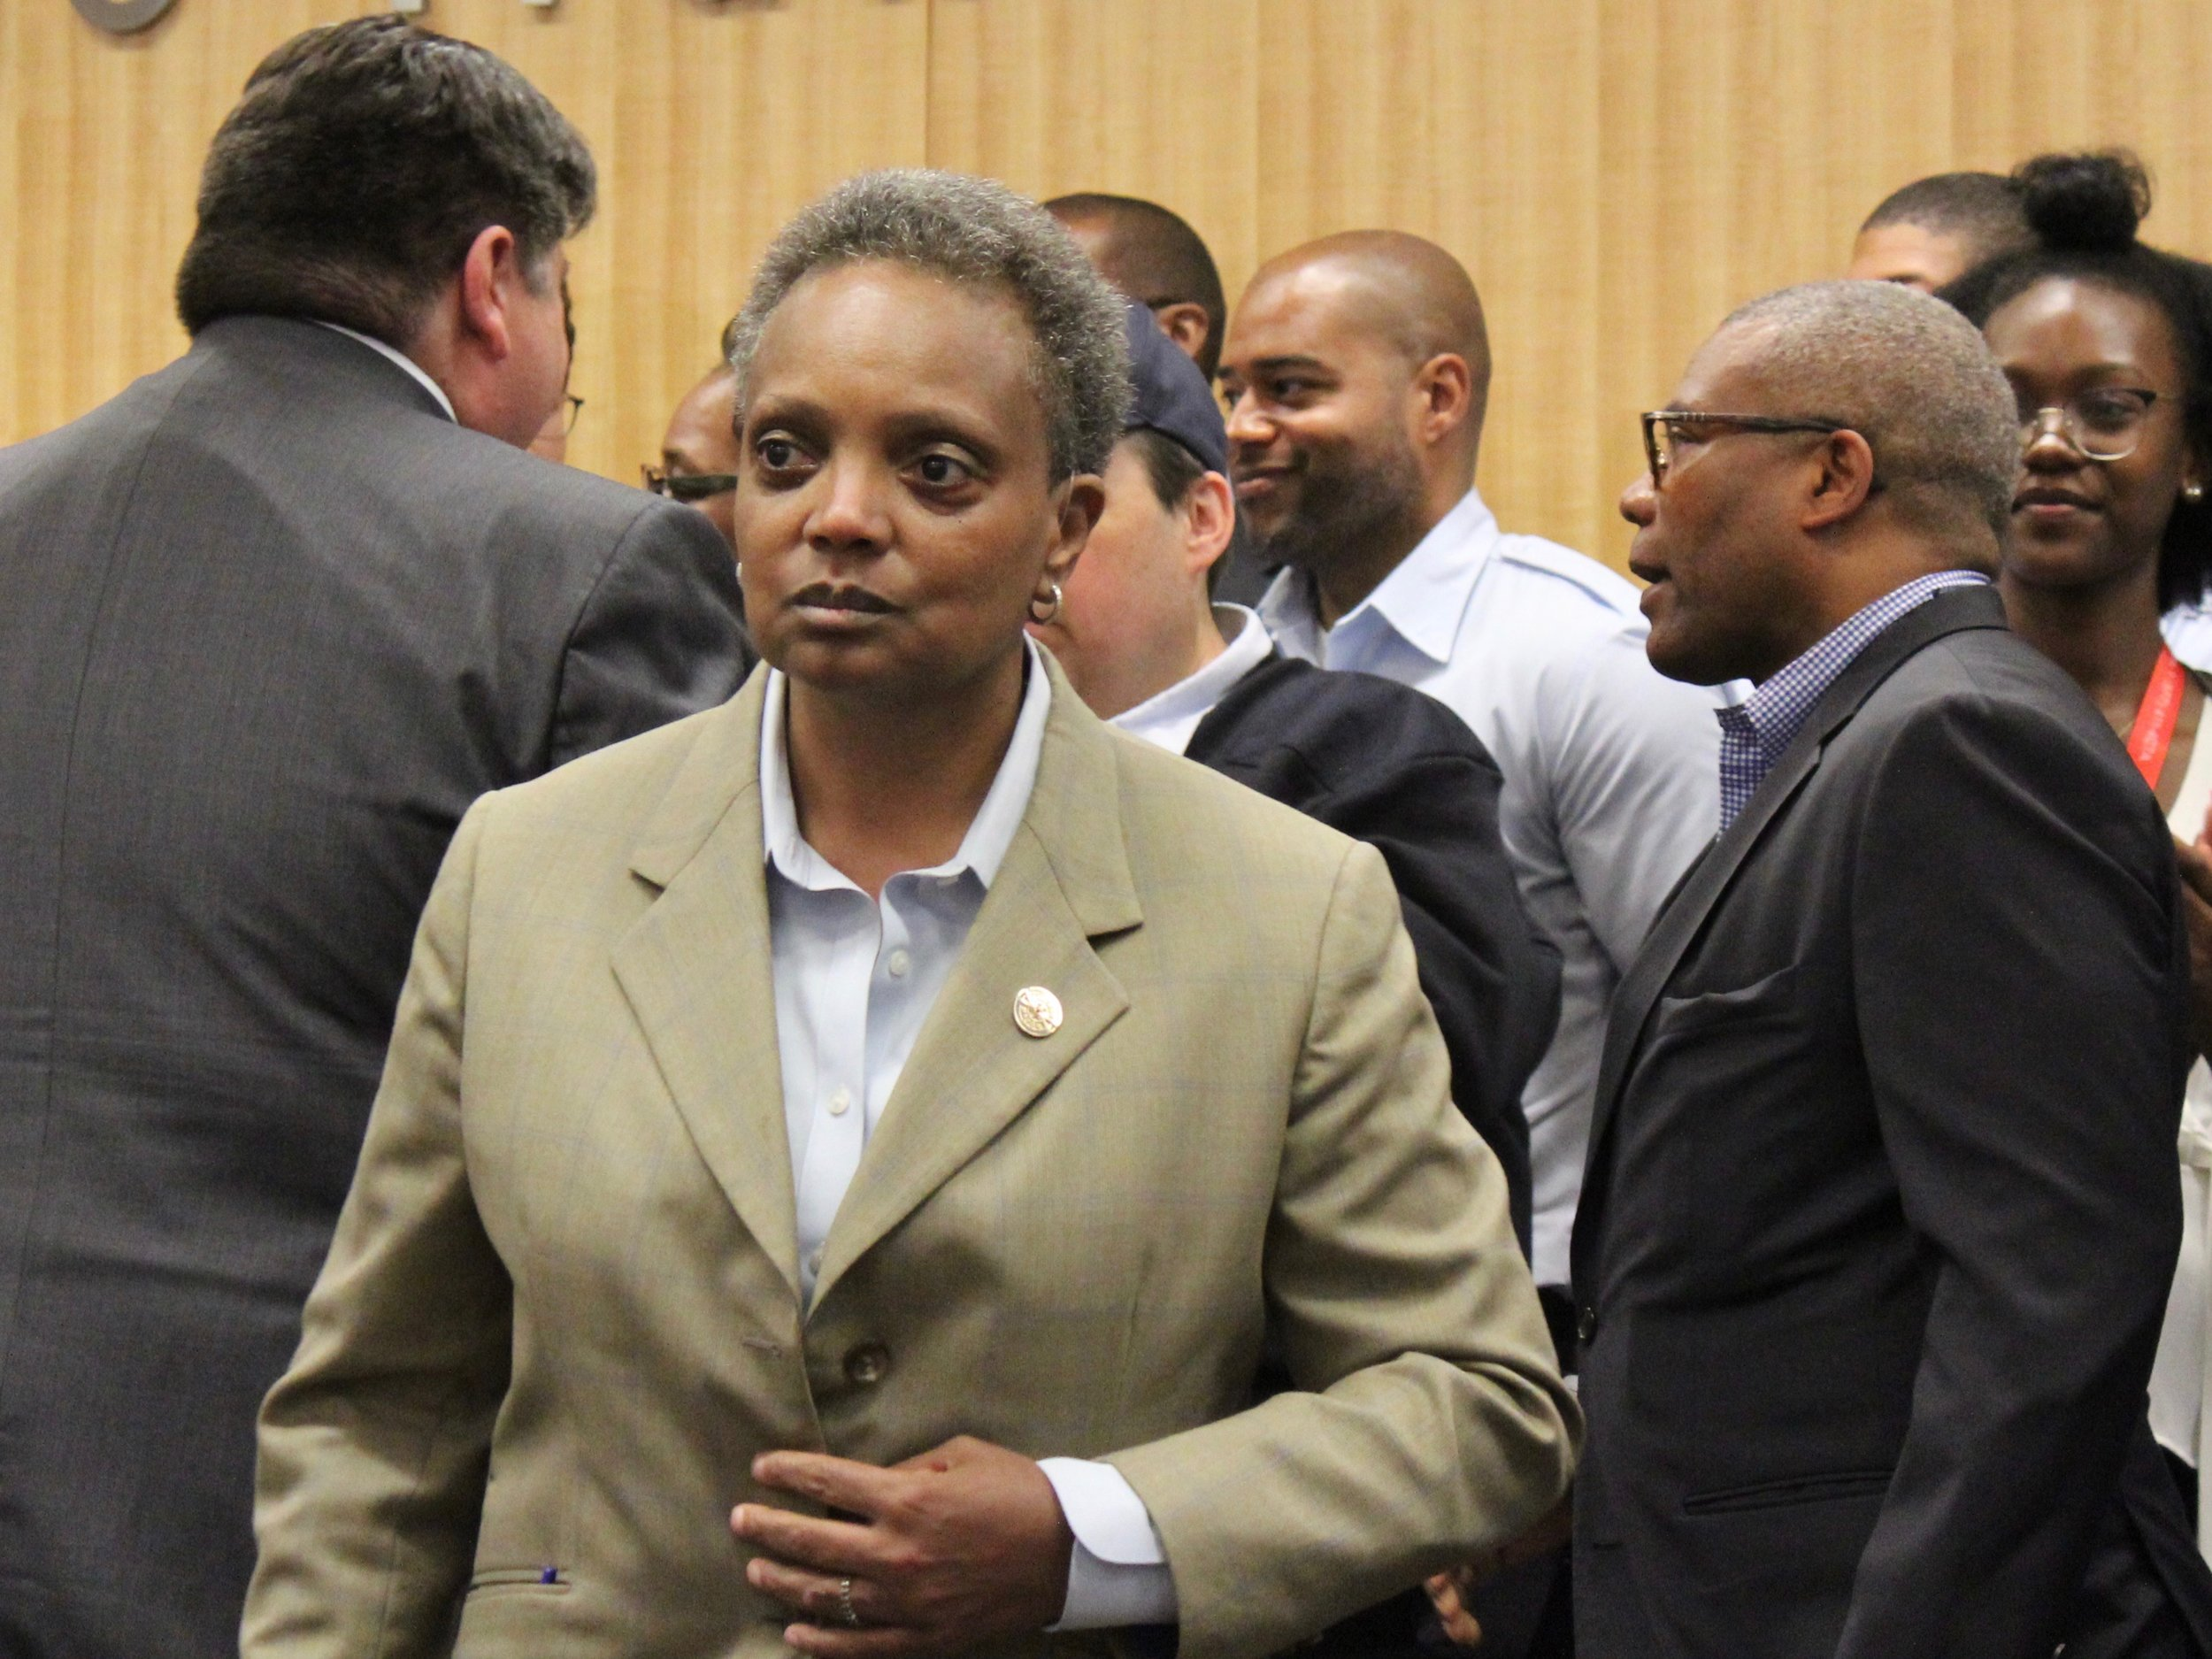 Chicago Mayor Lori Lightfoot has sent an open letter to President Trump criticizing his policy on immigration issues. (One Illinois/Ted Cox)